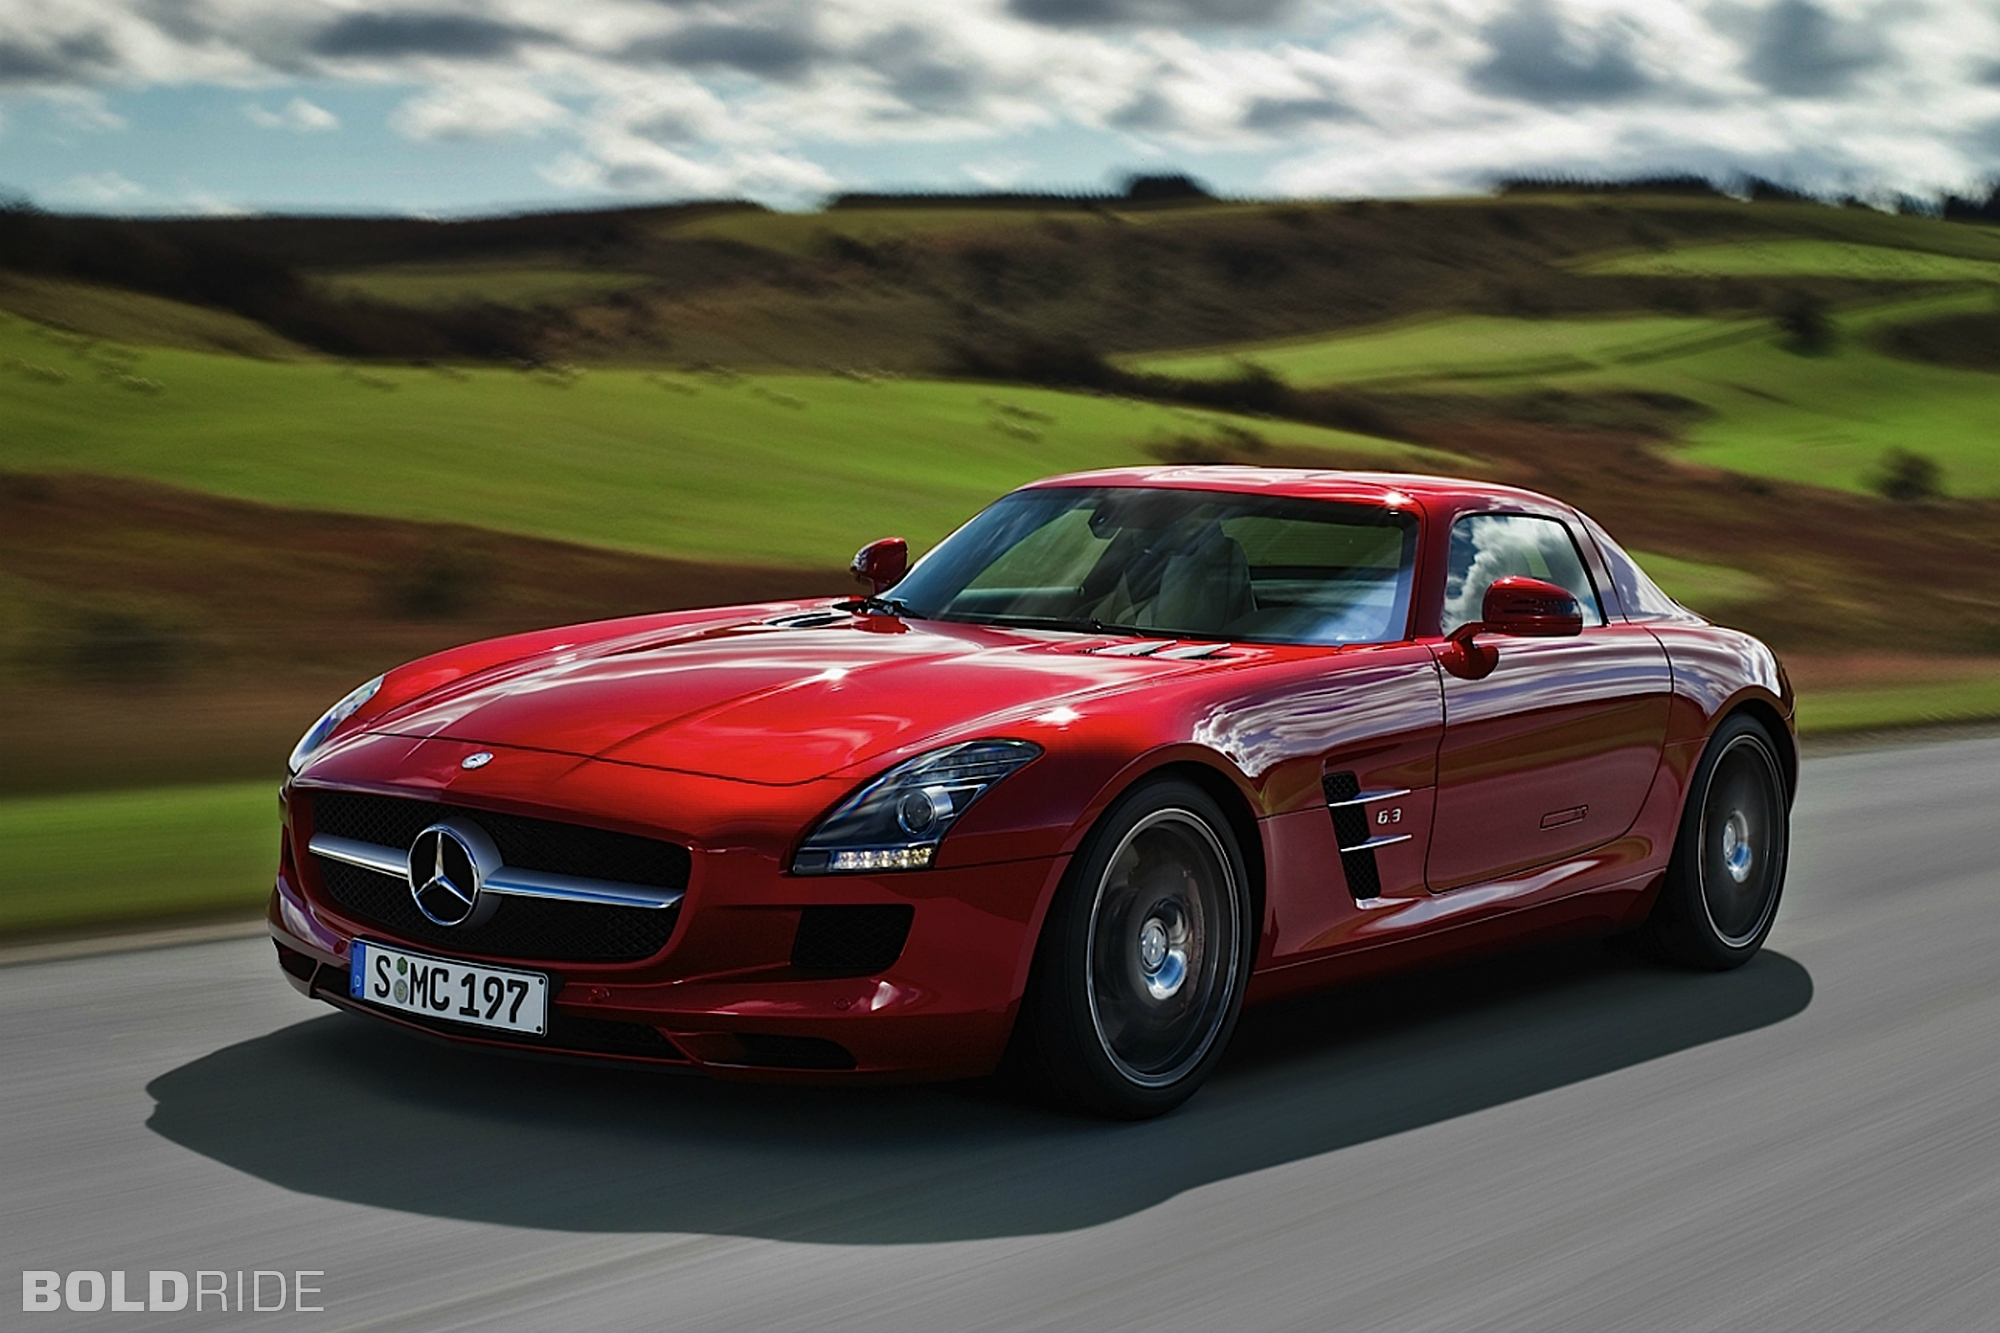 mercedes benz sls amg pictures posters news and videos on your pursuit hobbies interests. Black Bedroom Furniture Sets. Home Design Ideas